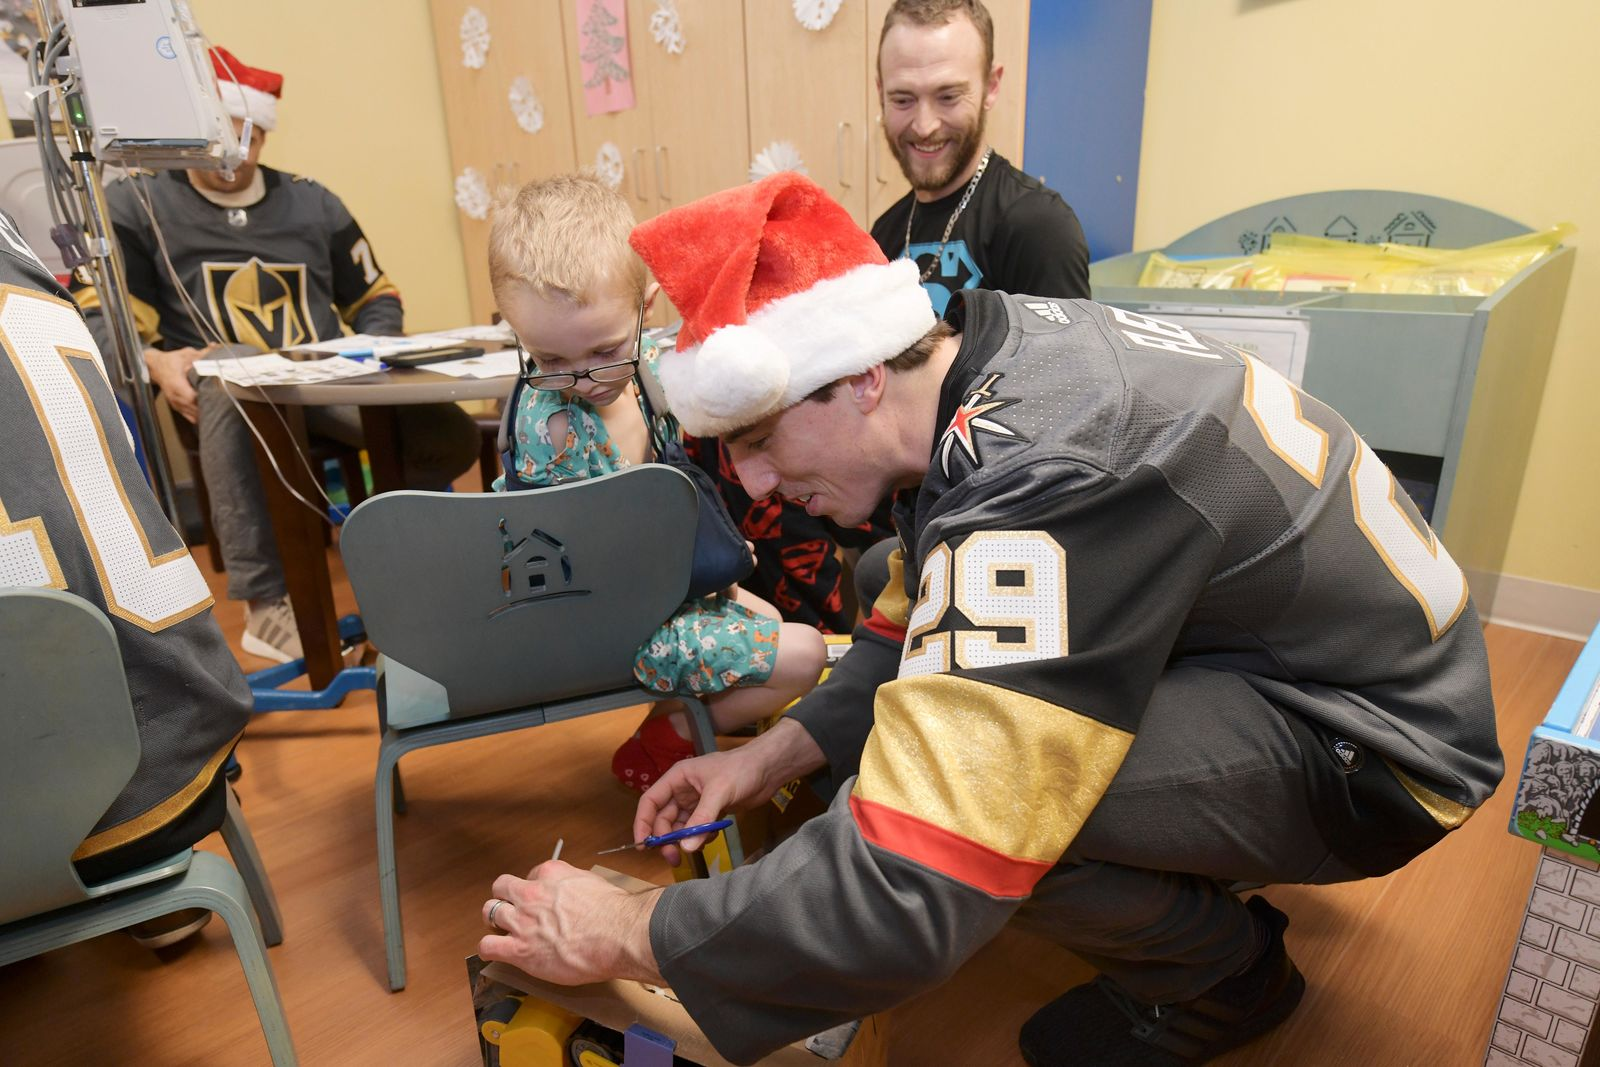 Marc-Andre Fleury helps Brayden Pena open a gift during a visit of the Golden Knights to Summerlin Hospital Friday, December 21, 2018. CREDIT: Sam Morris/Las Vegas News Bureau